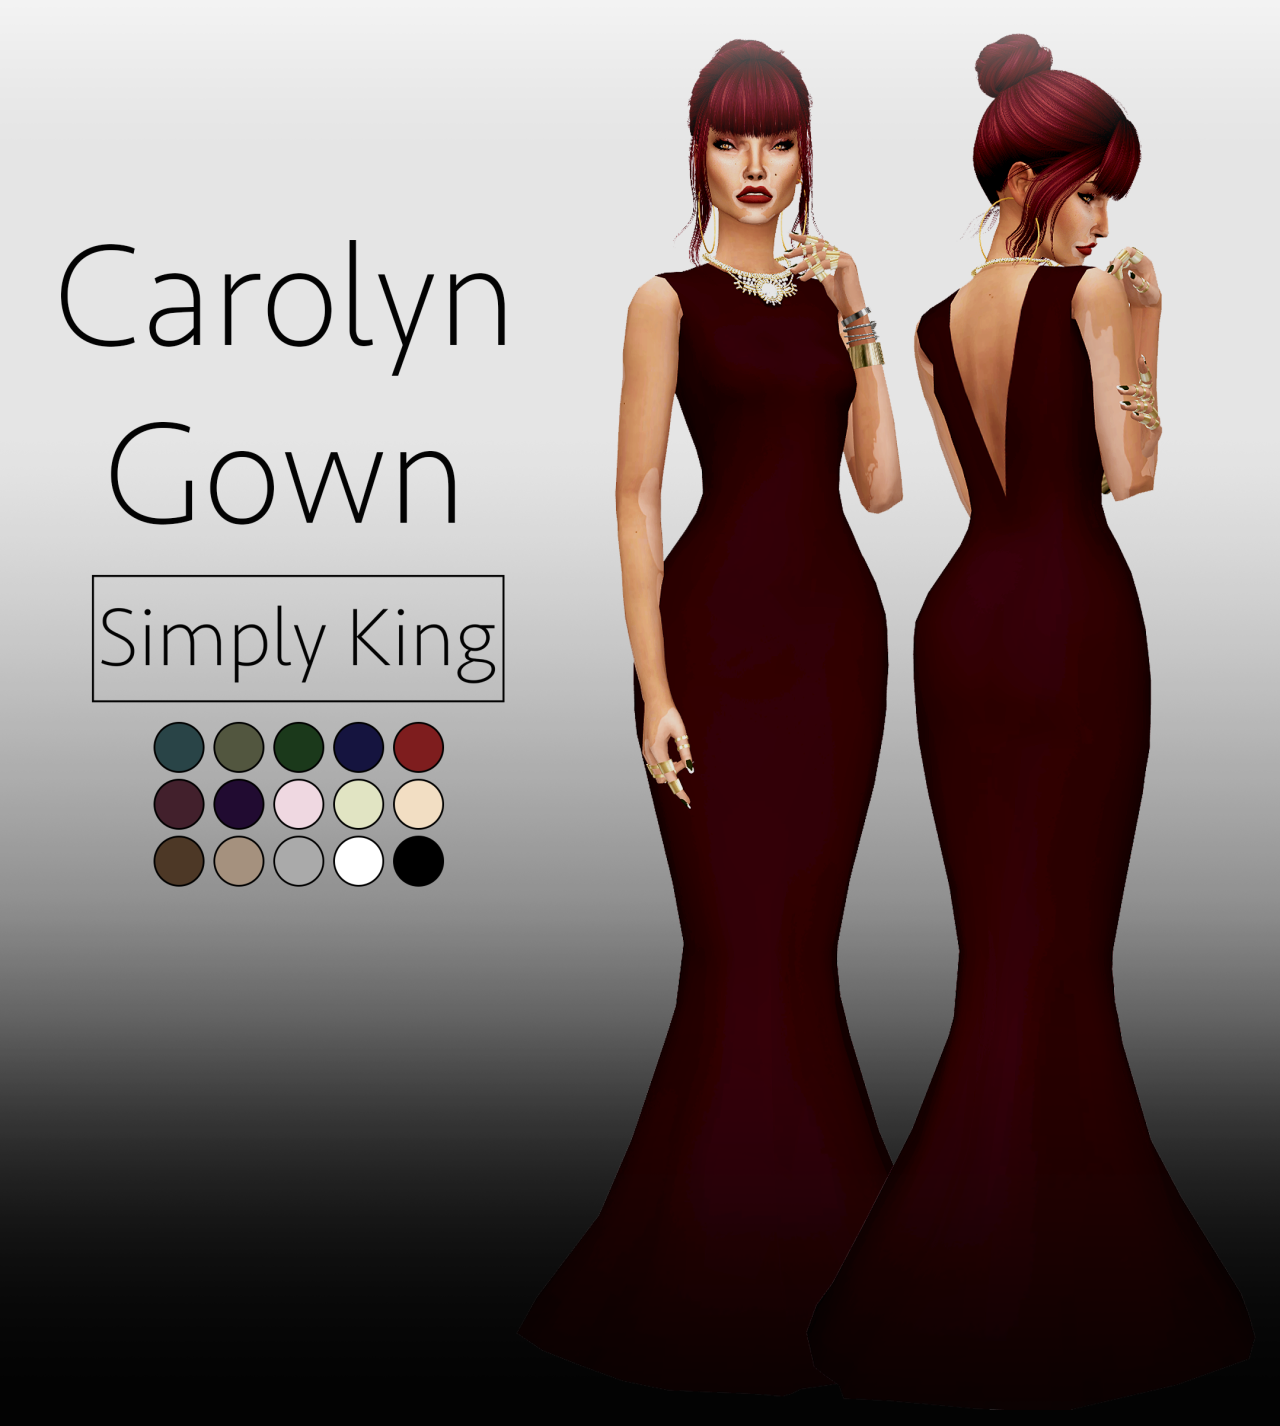 Carolyn Gown by SimplyKing